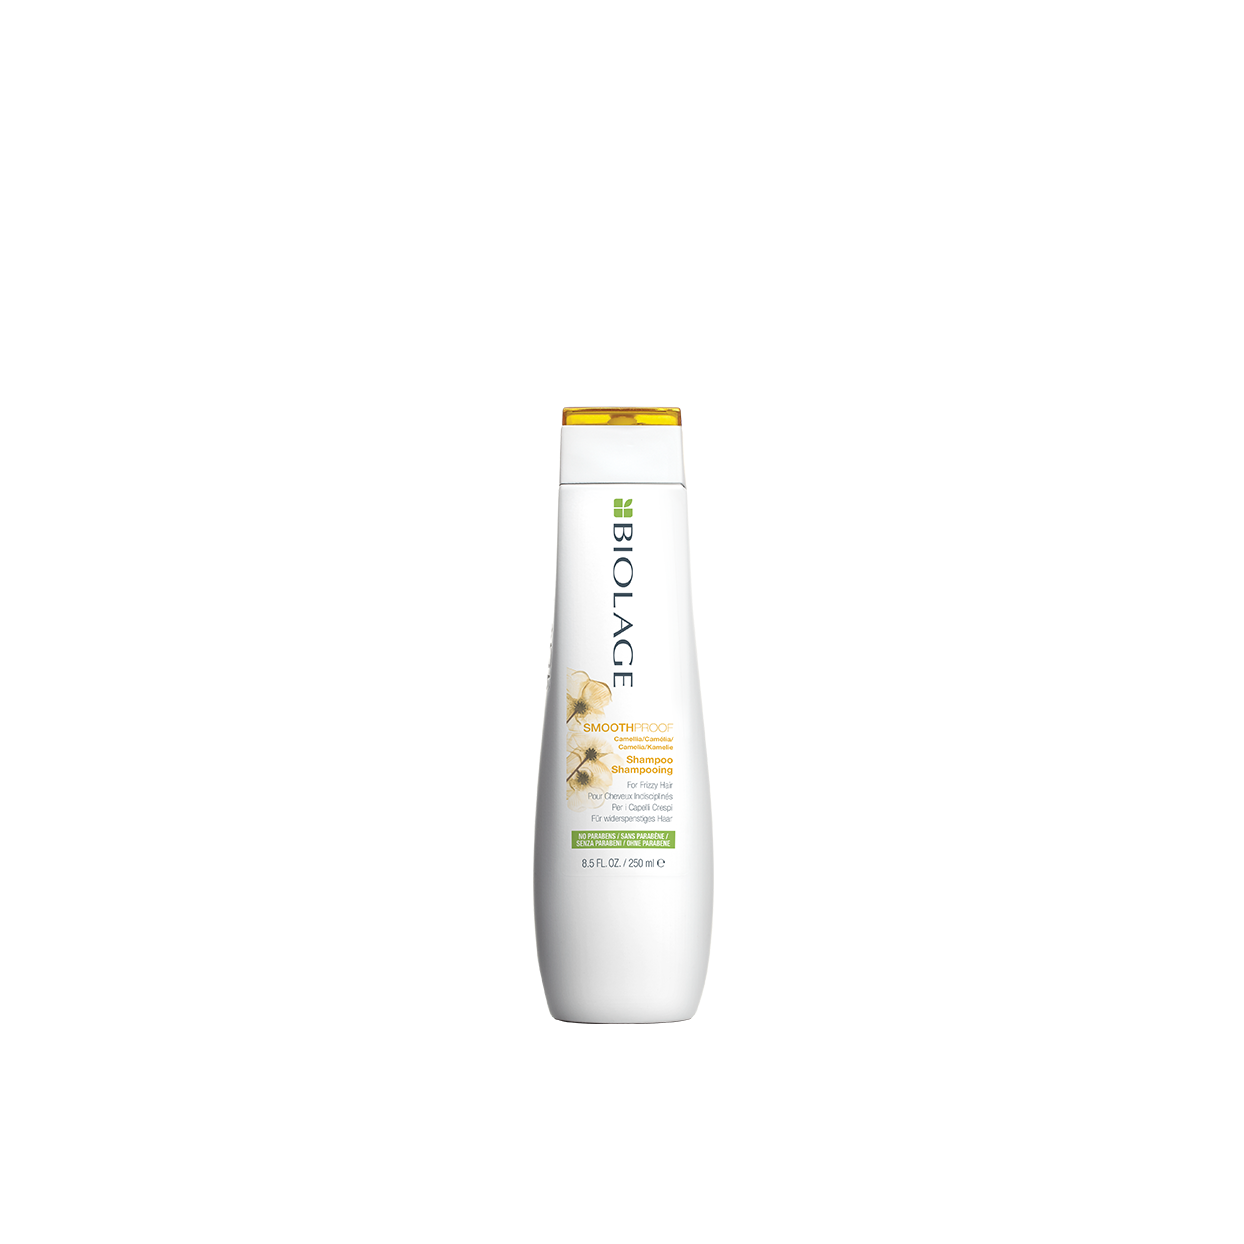 Biolage SmoothProof Shampoo Smoothing Shampoo for Frizzy Hair